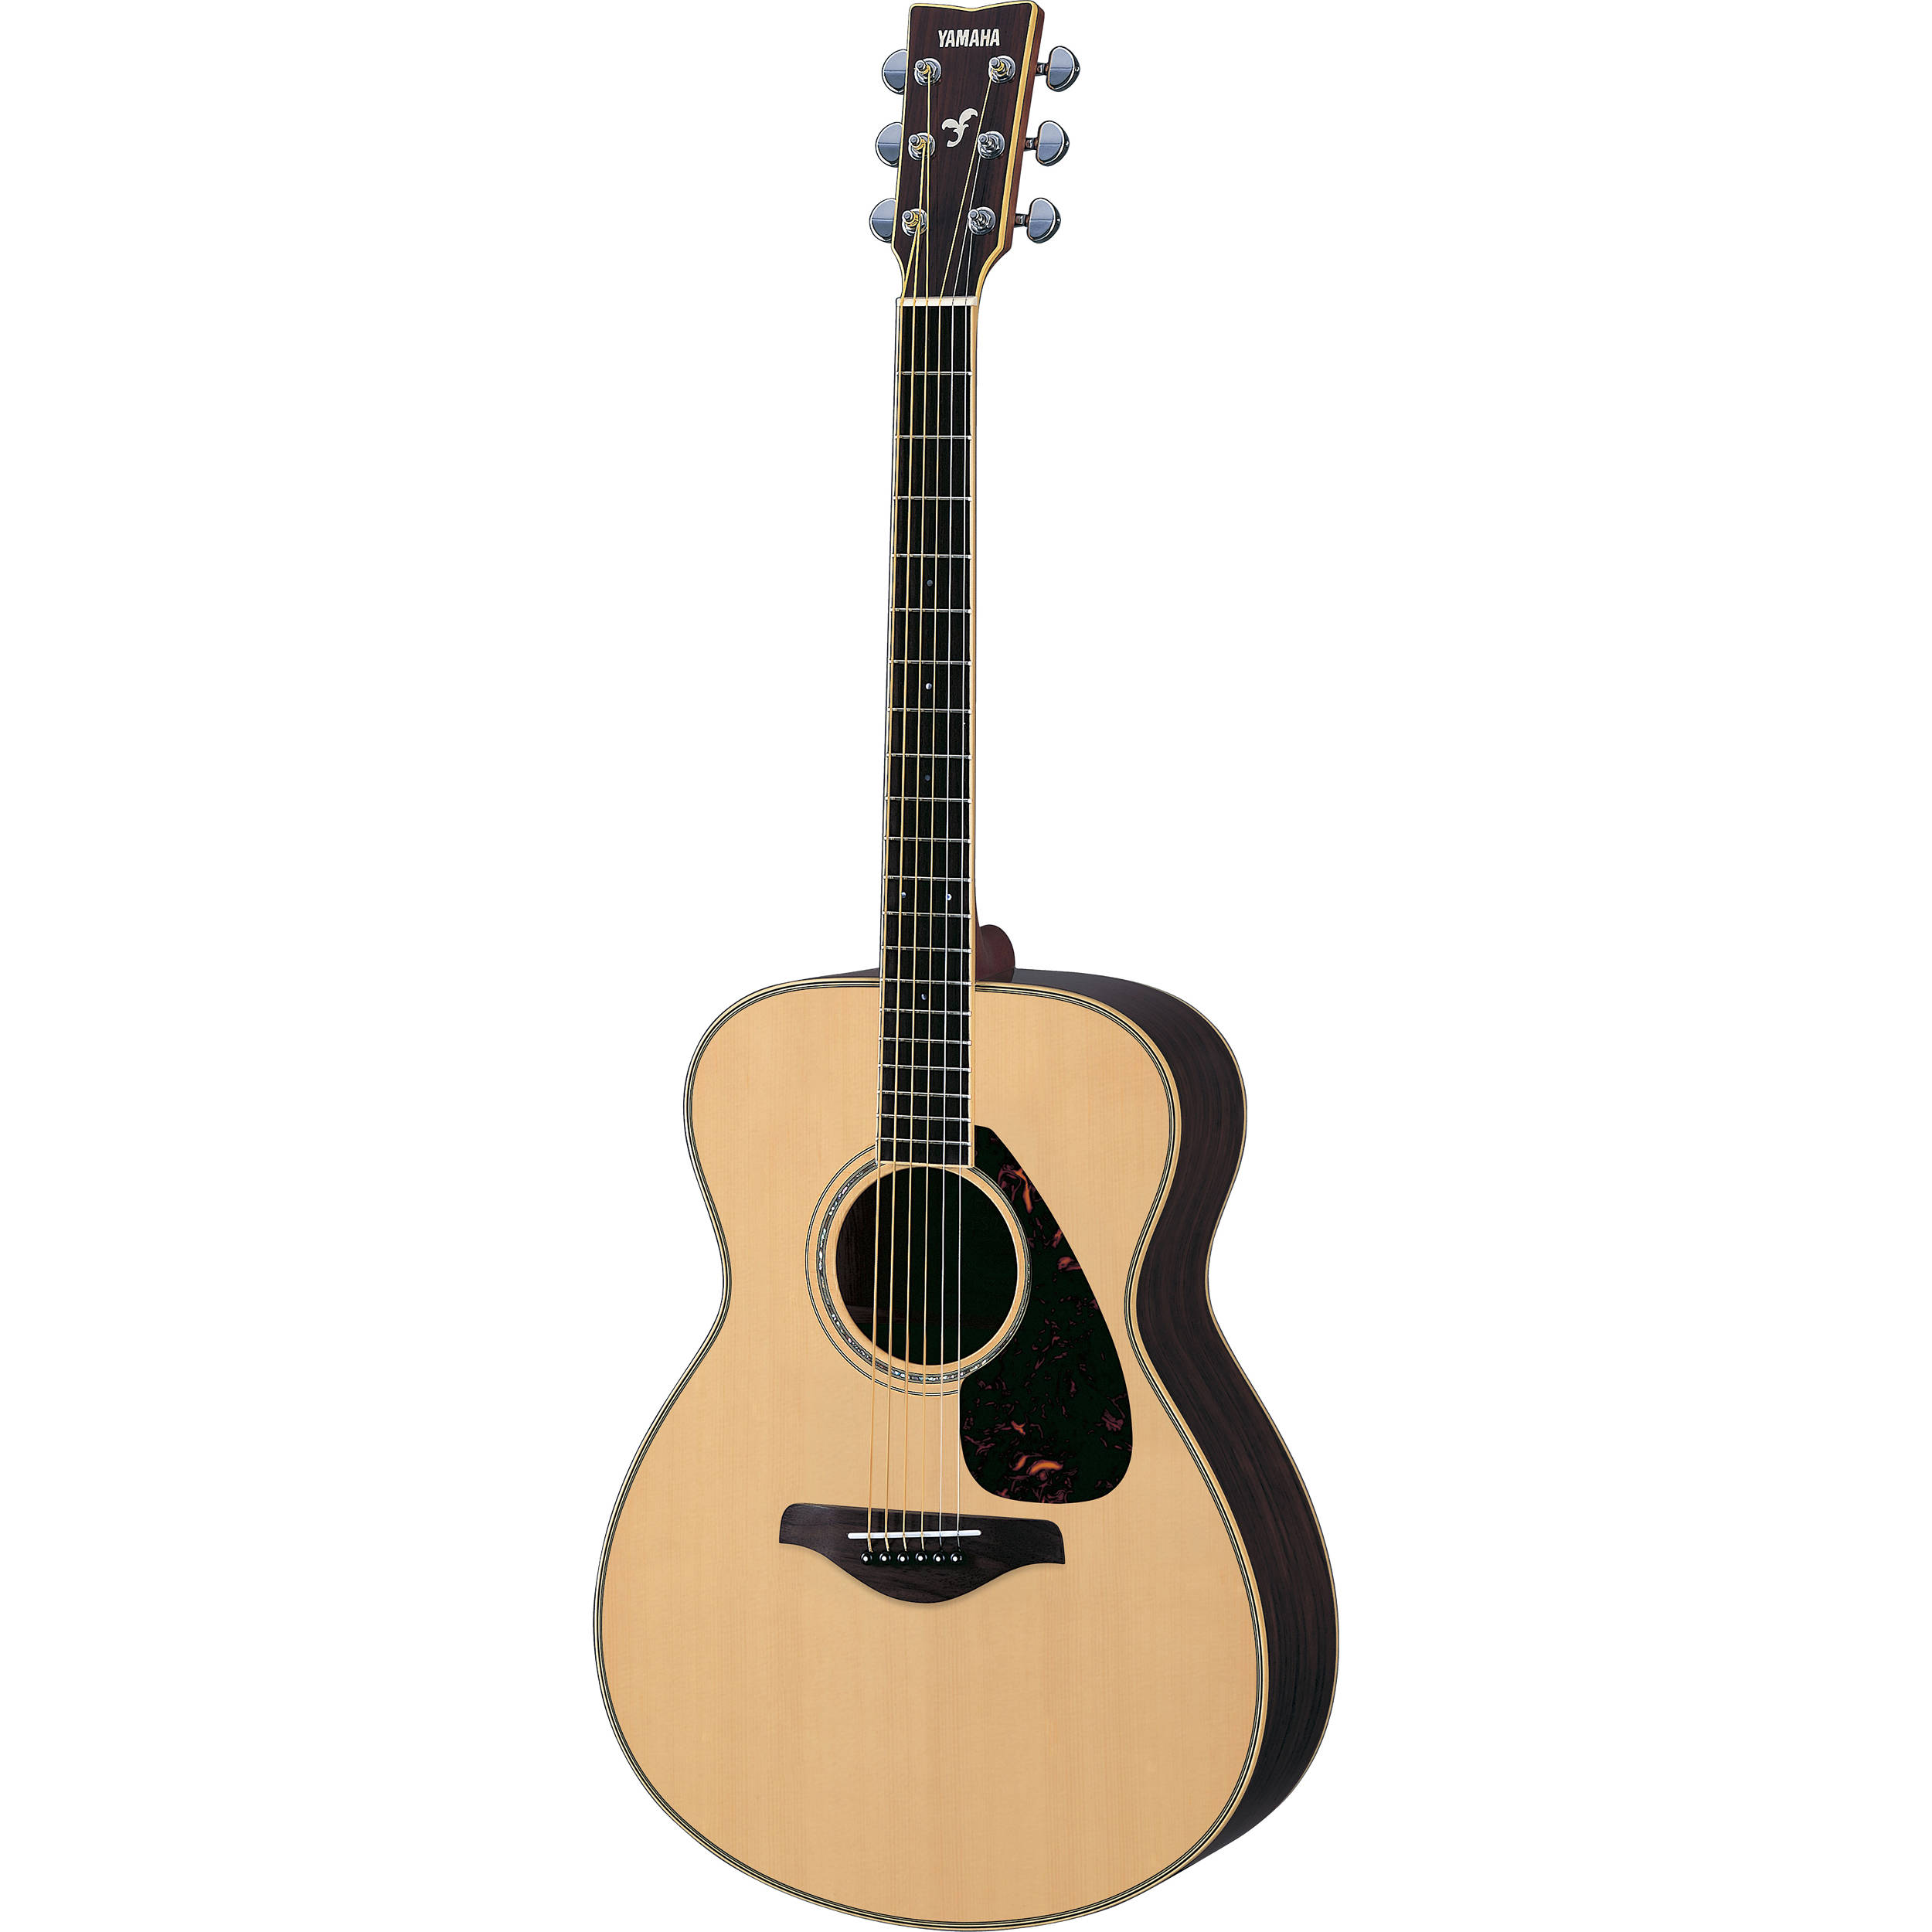 Yamaha fs730s solid top acoustic guitar natural fs730s b h for New yamaha acoustic guitars